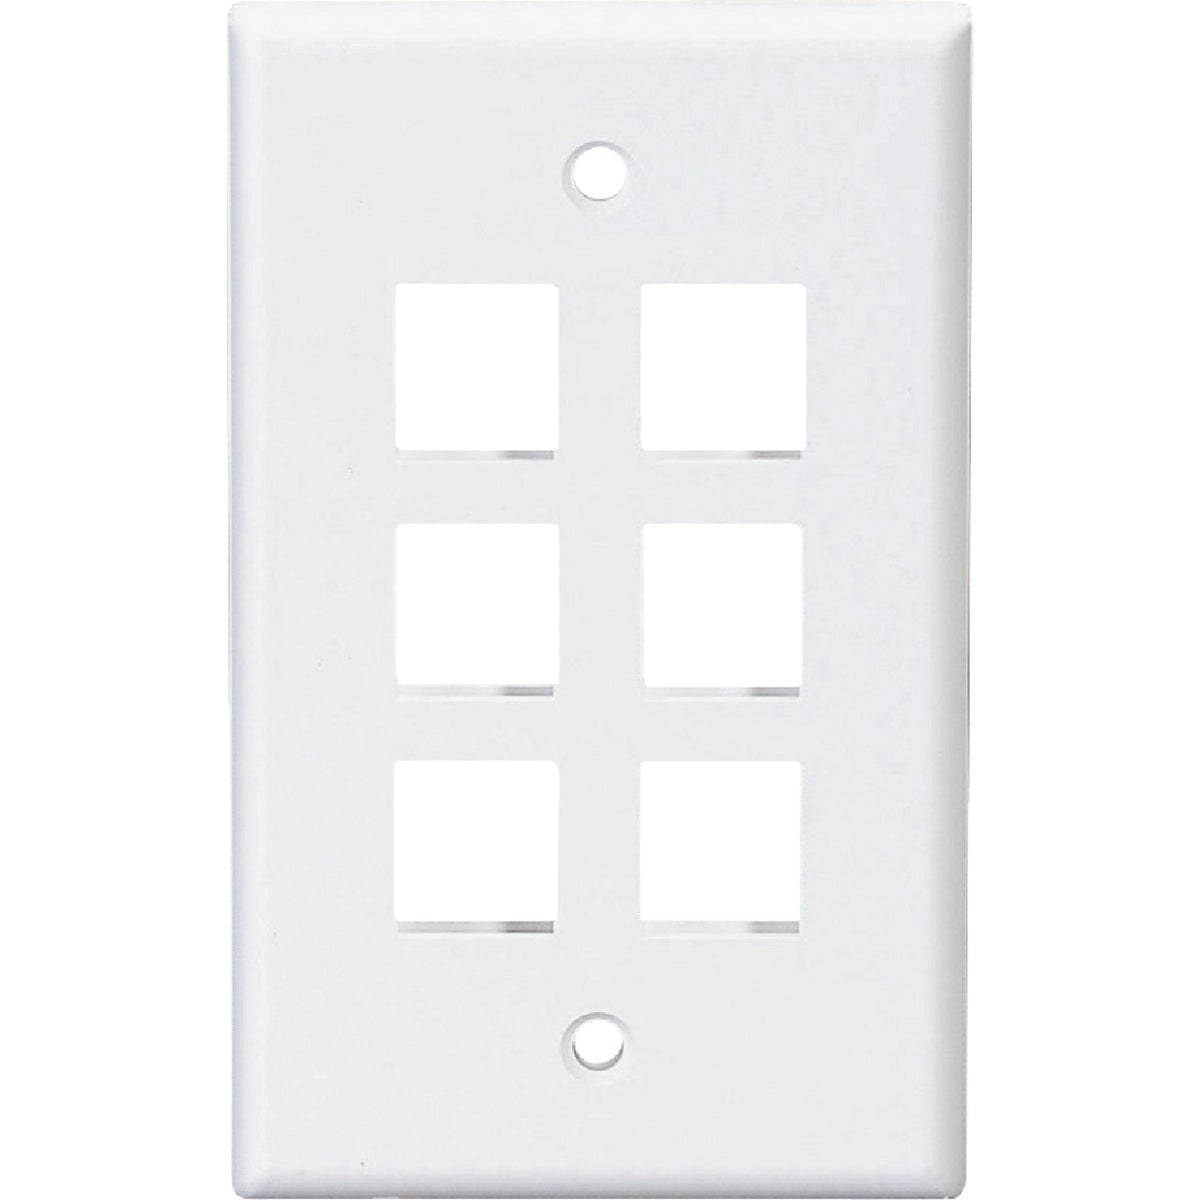 6-PORT WALL PLATE - C62-41080-6WP by Leviton Mfg Co